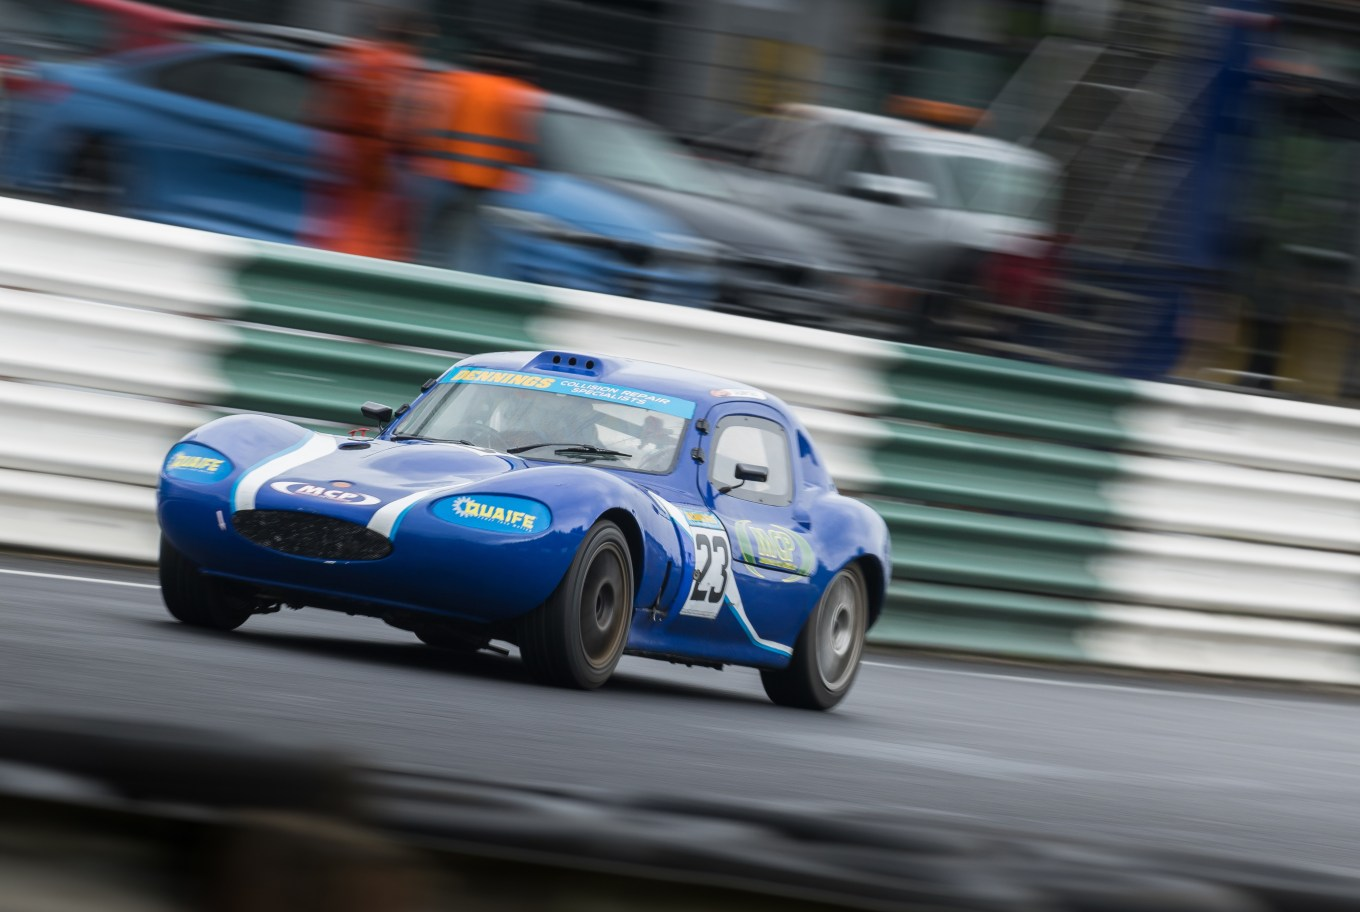 On his Mondello Park debut, Patrick's lap times were within just